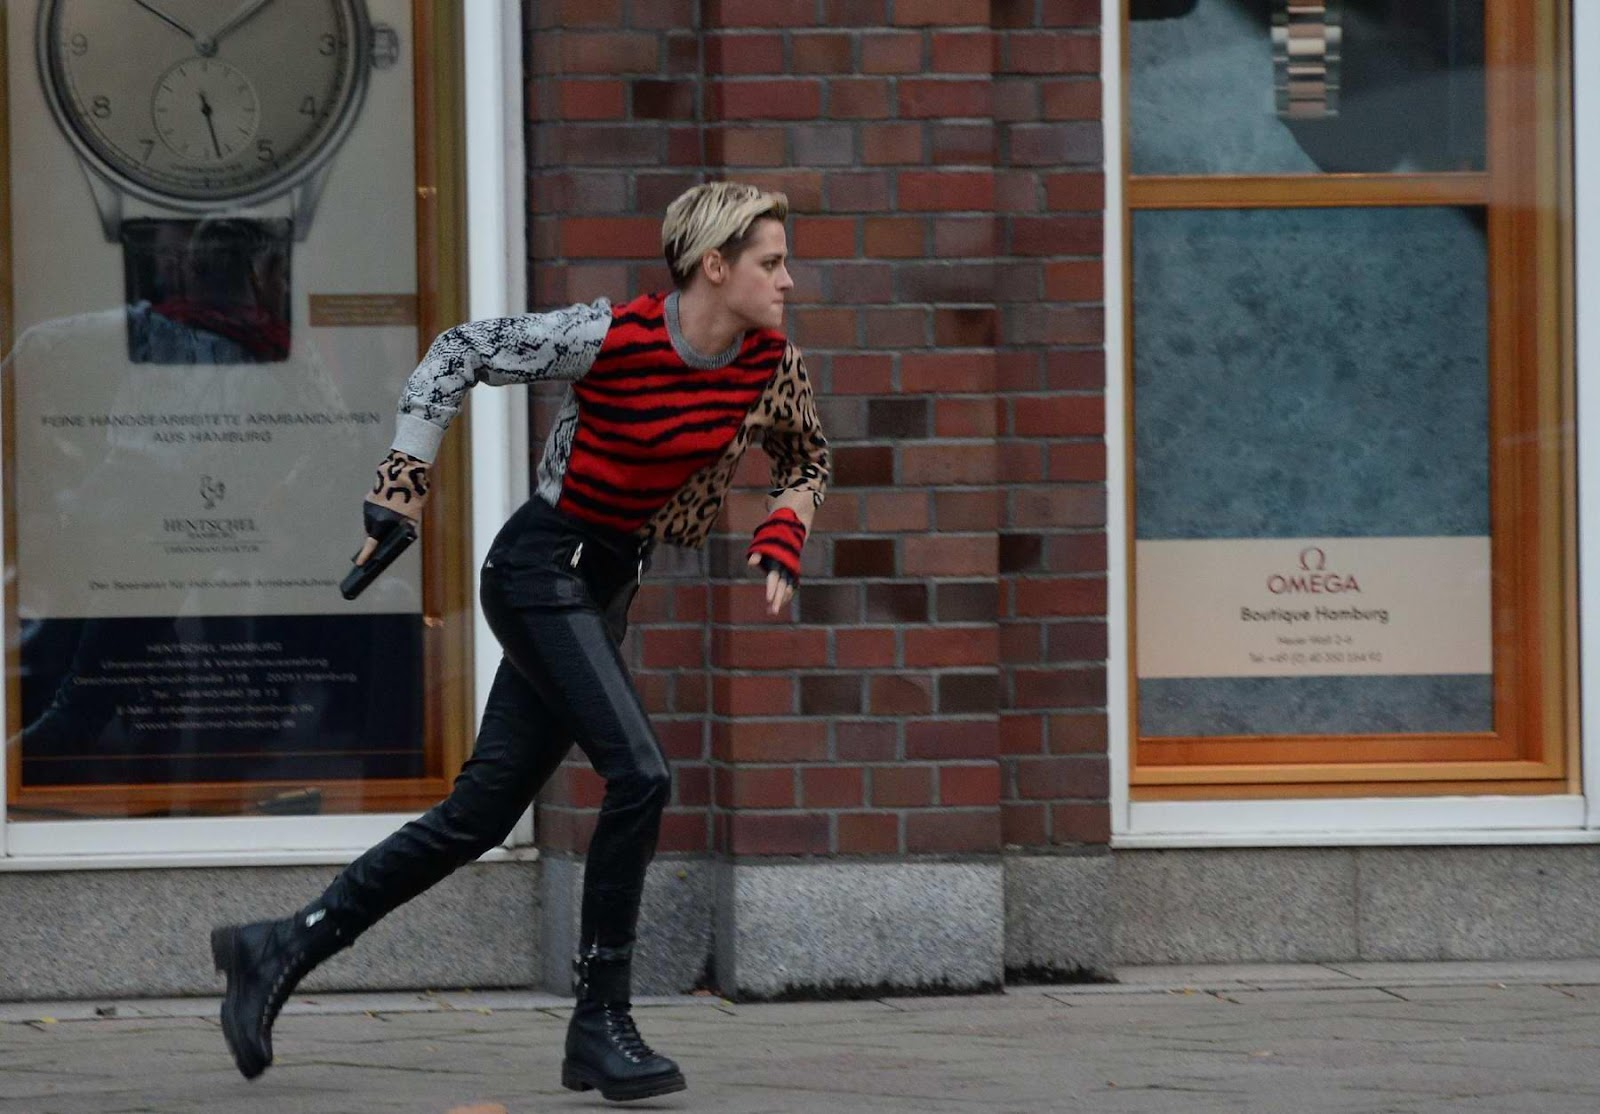 https://www.celebsfirst.com/wp-content/uploads/2018/10/kristen-stewart-spotted-while-filming-an-action-scene-on-the-set-of-charlies-angels-in-hamburg-germany-111018_3.jpg